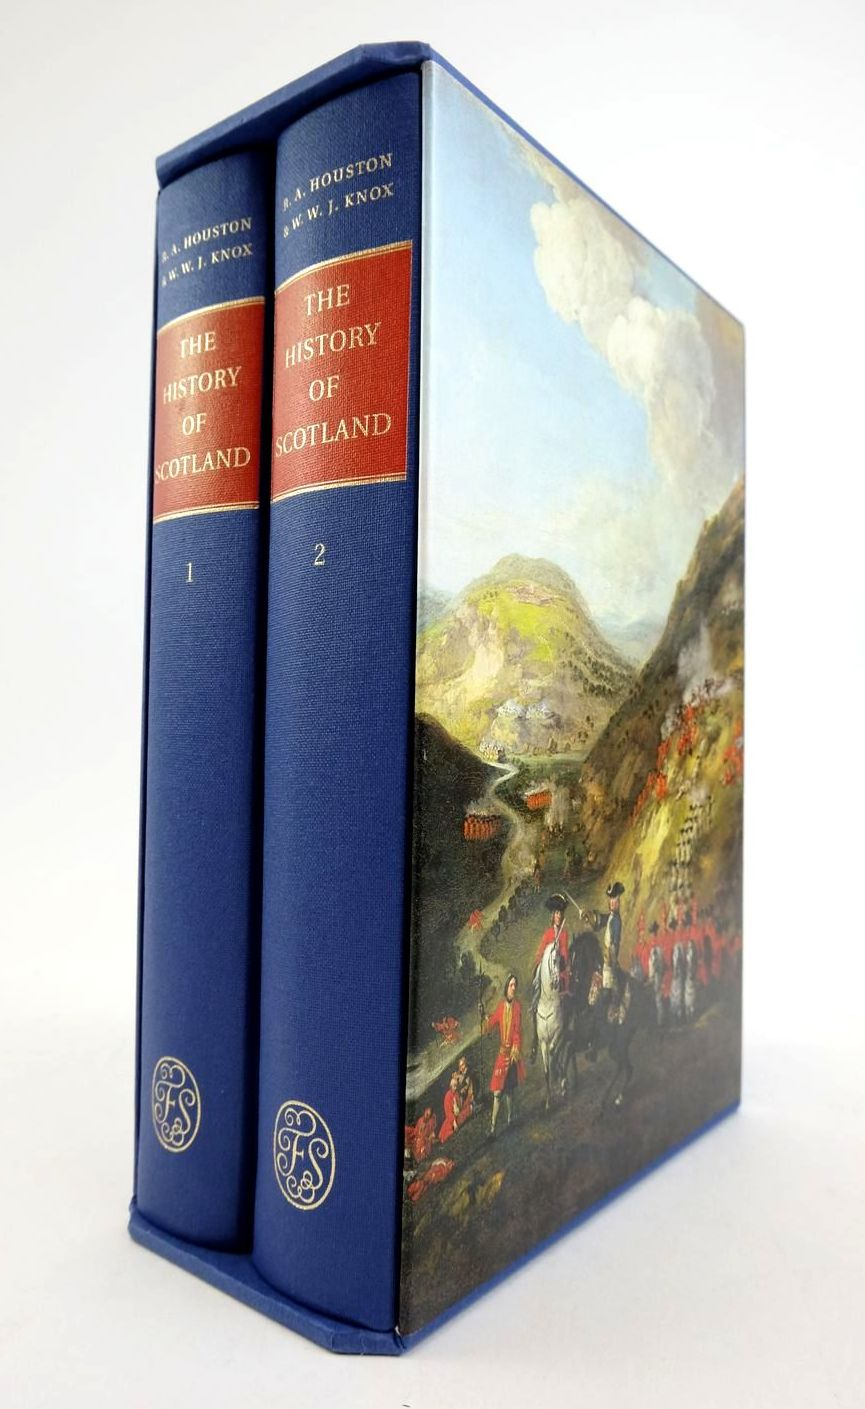 Photo of THE HISTORY OF SCOTLAND FROM THE EARLIEST TIMES TO THE PRESENT DAY (2 VOLUMES) written by Houston, R.A. Knox, W.W.J. published by Folio Society (STOCK CODE: 1822208)  for sale by Stella & Rose's Books